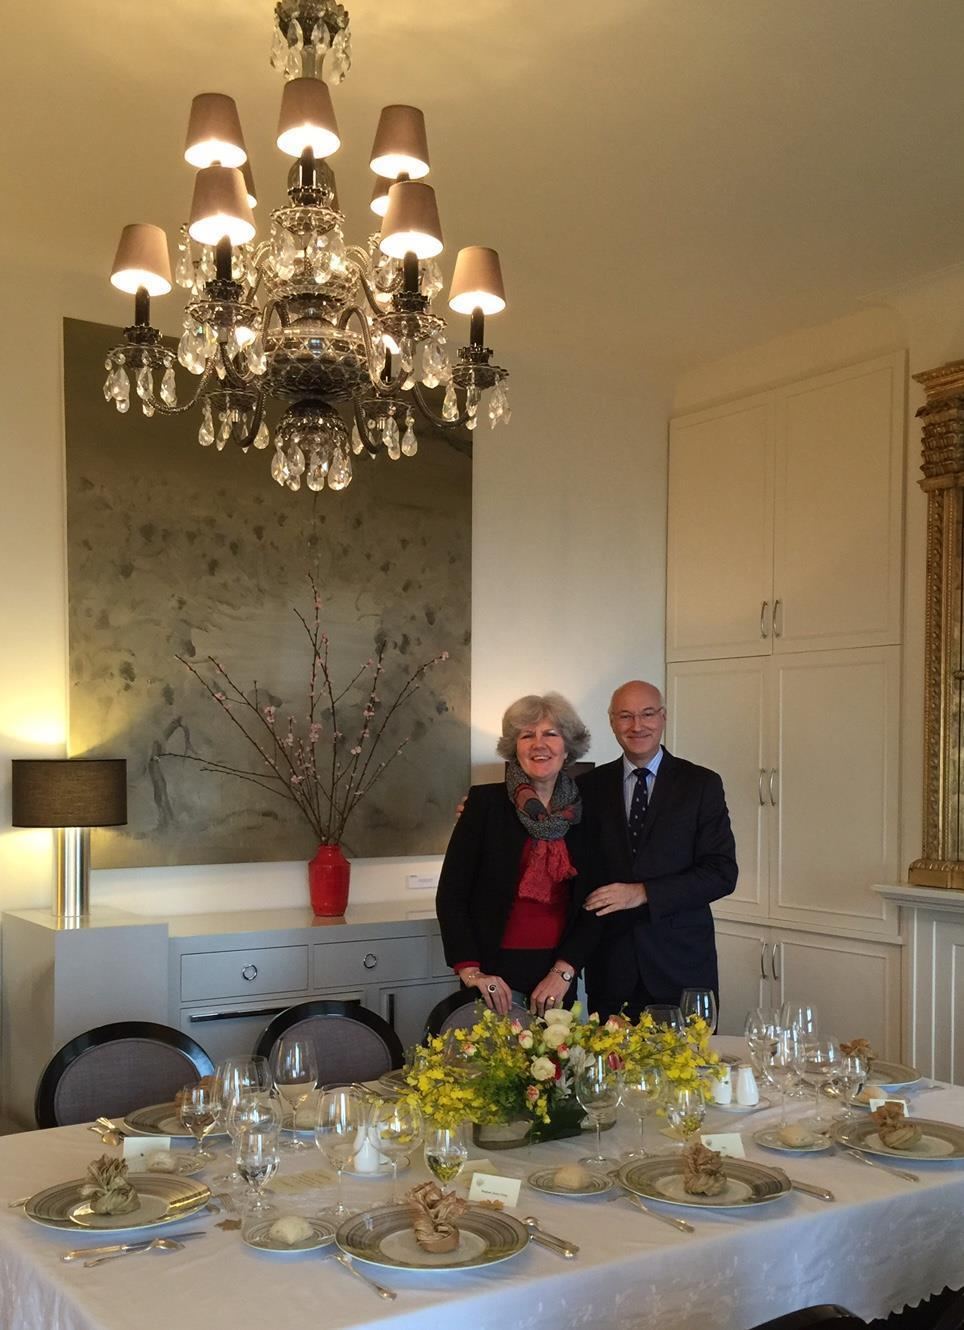 OFFICIAL DINNER GOOD FRANCE AT THE FRENCH RESIDENCE 18 March 2018 (Sunday) Inspired by Auguste Escoffier, who launched the Dîners